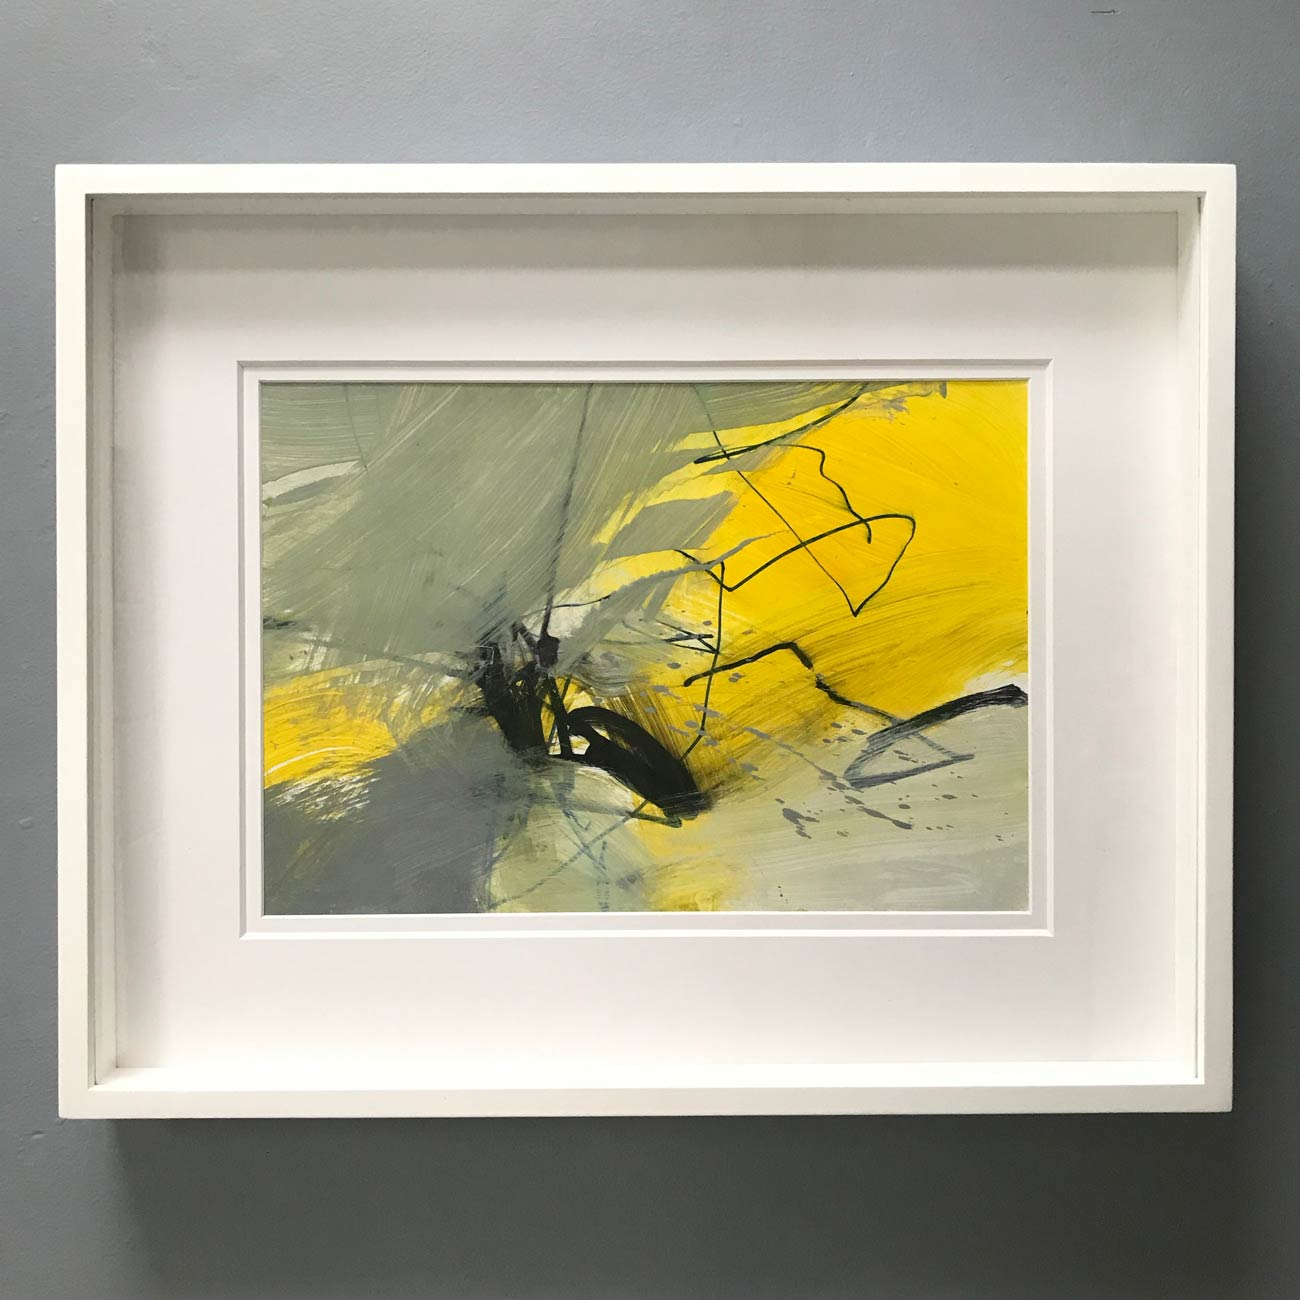 Falling Leaves framed by Neil Canning. Studio Collection Winter 2020